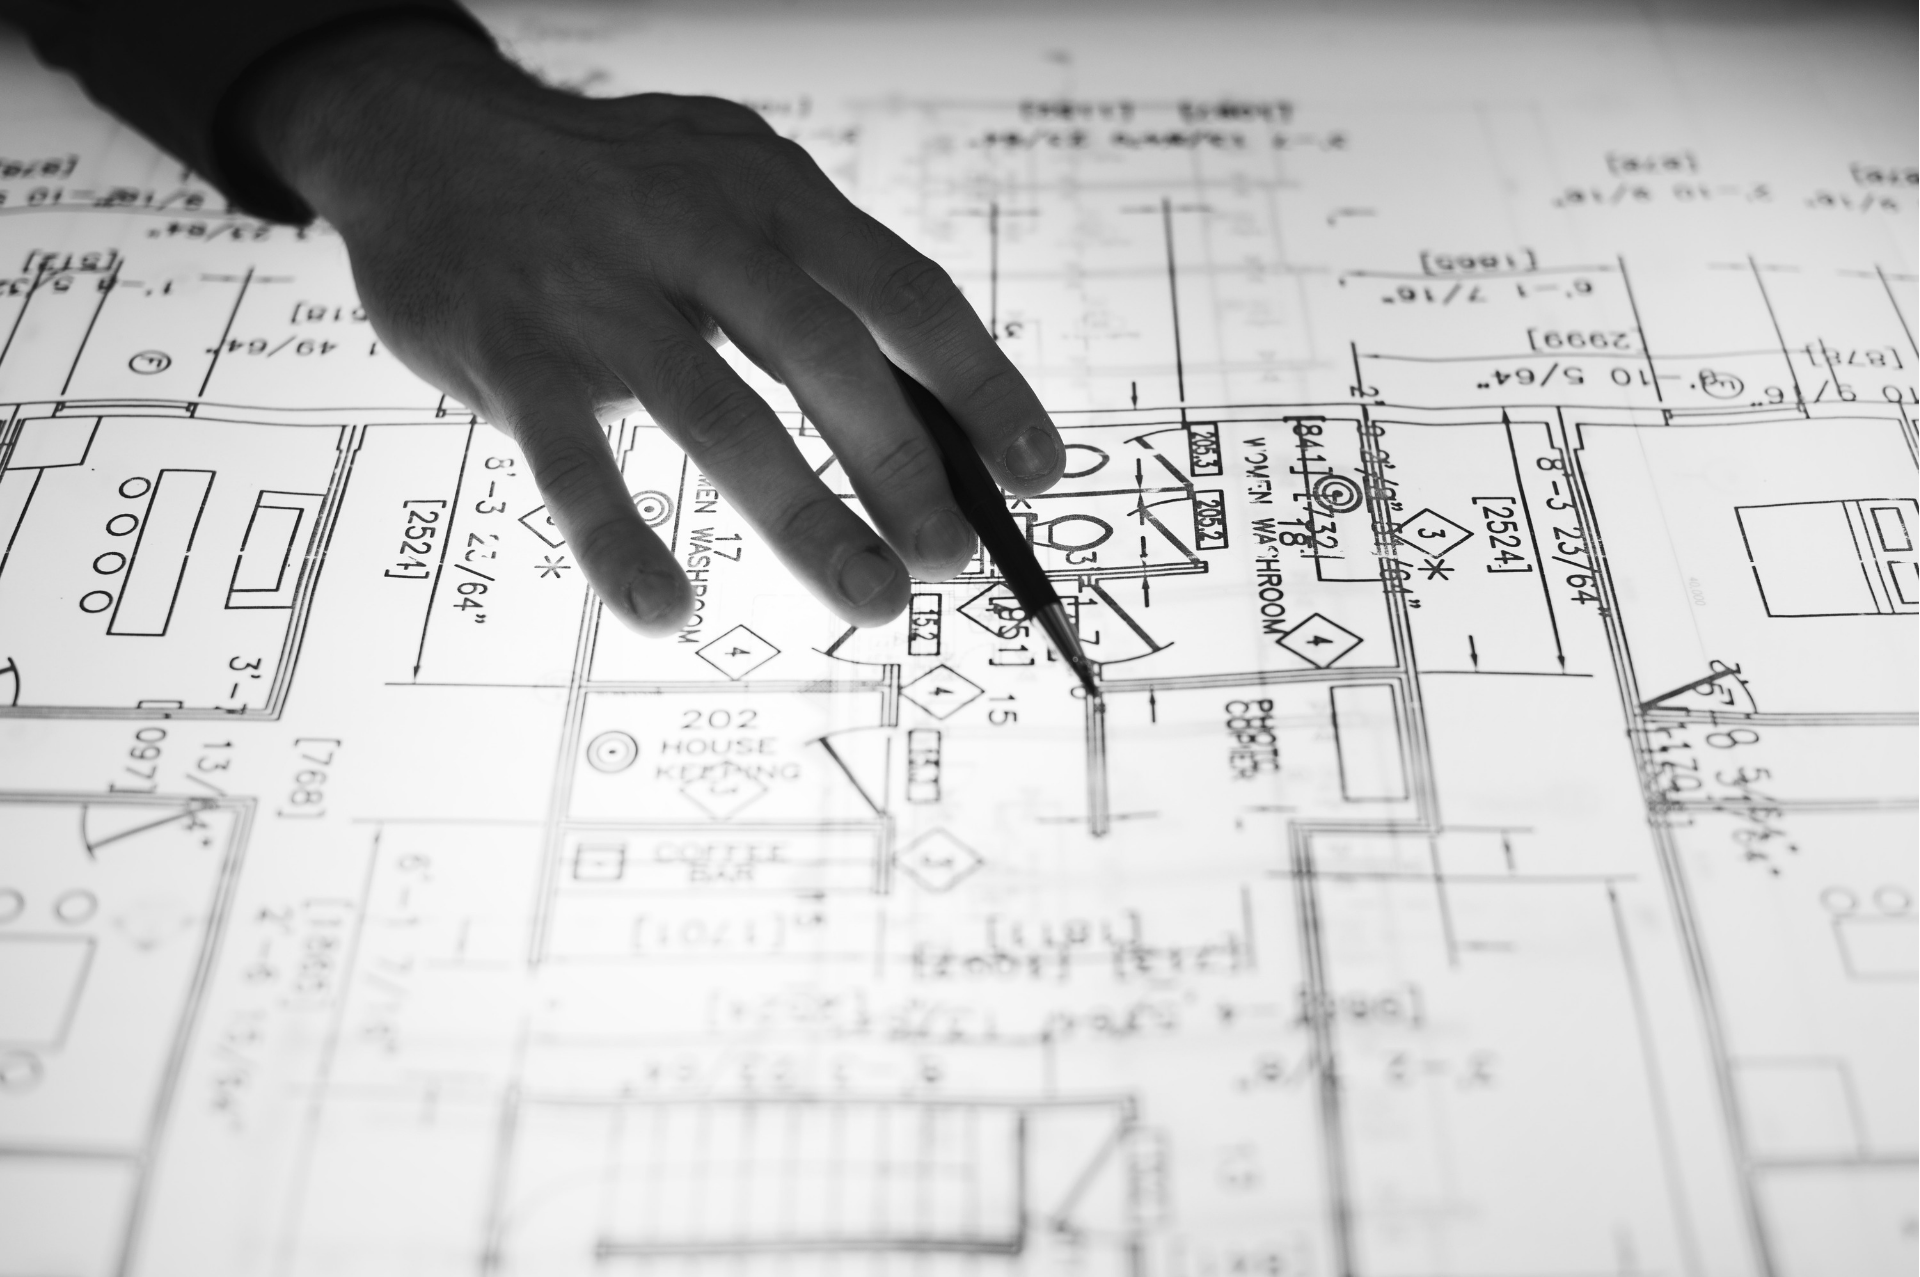 Hand with pencil pointing to part of lighting design